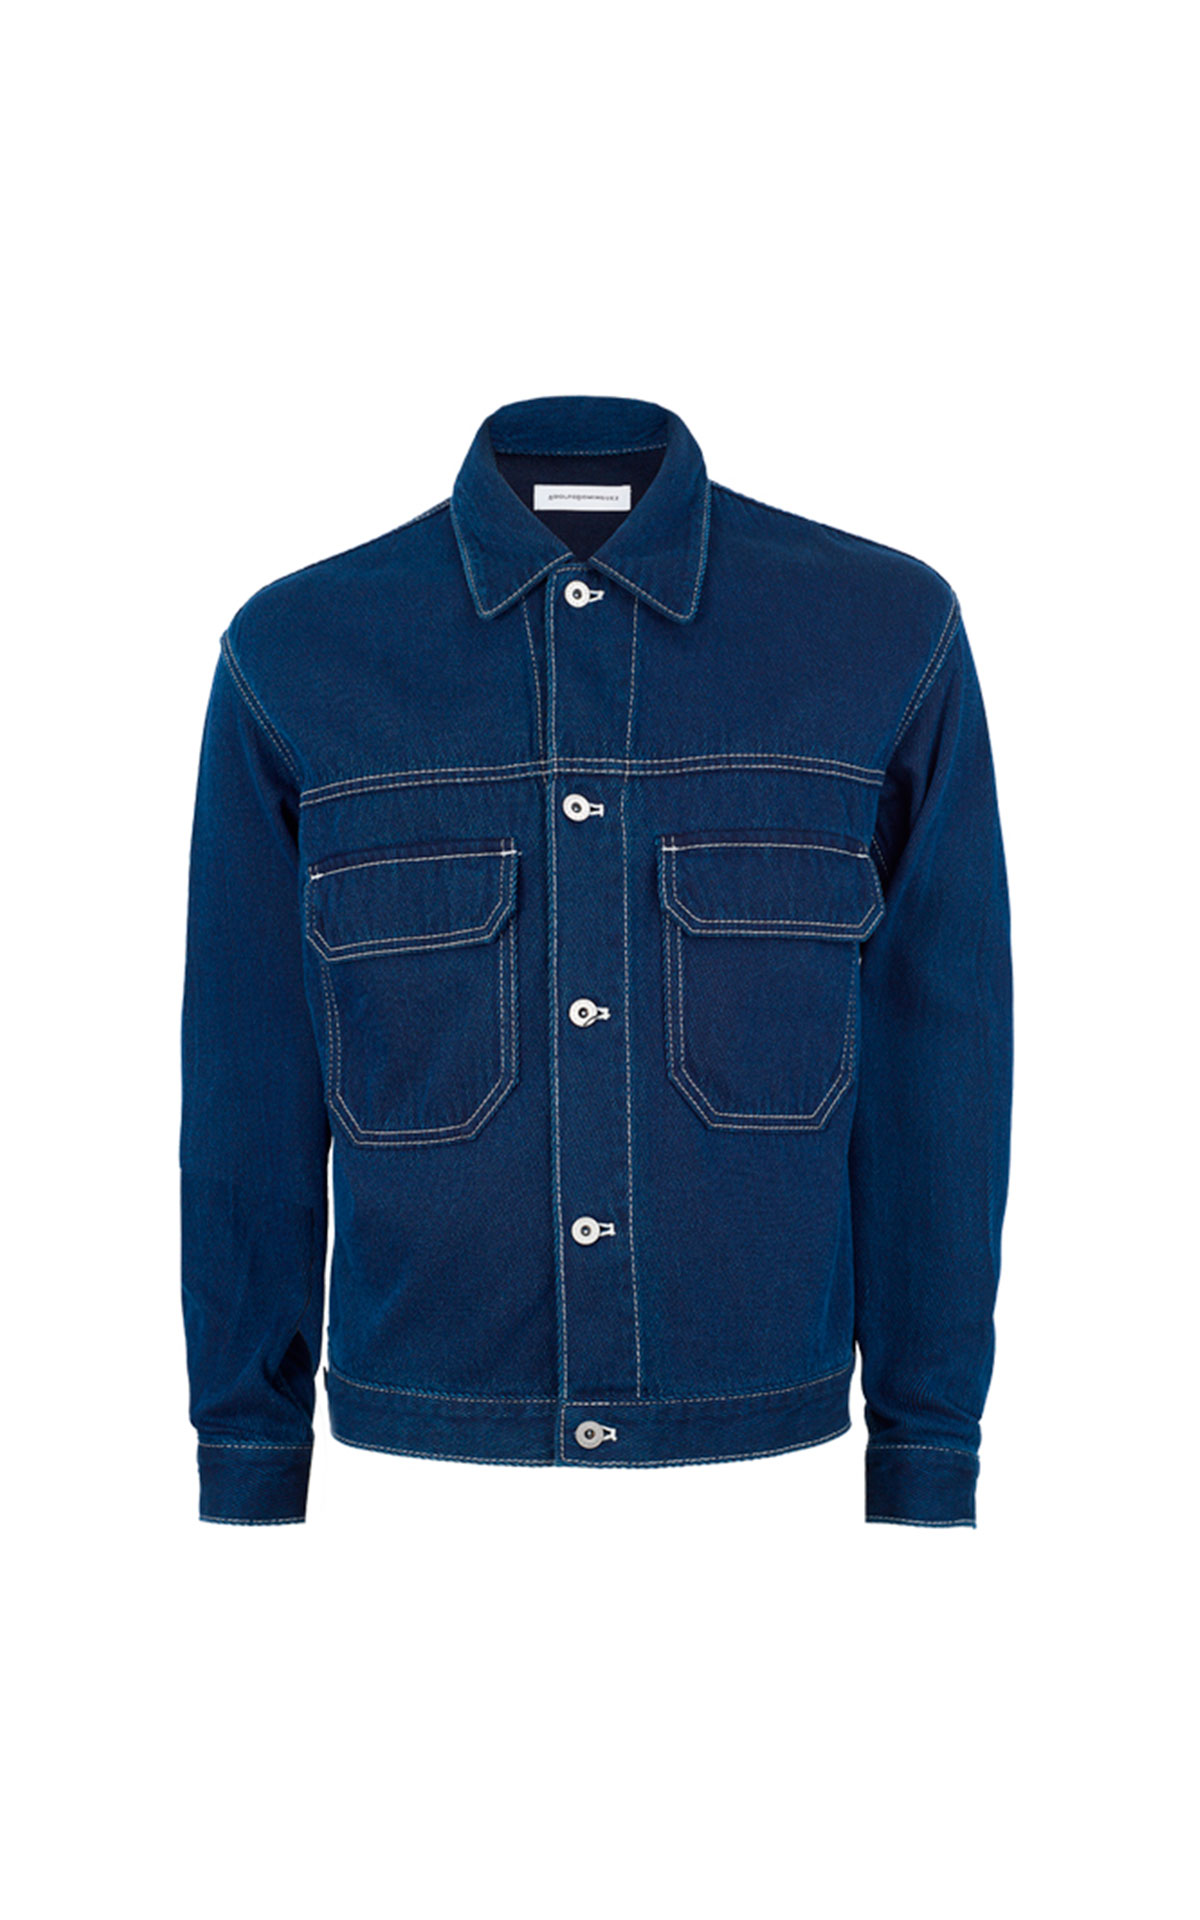 Denim jacket Adolfo Dominguez